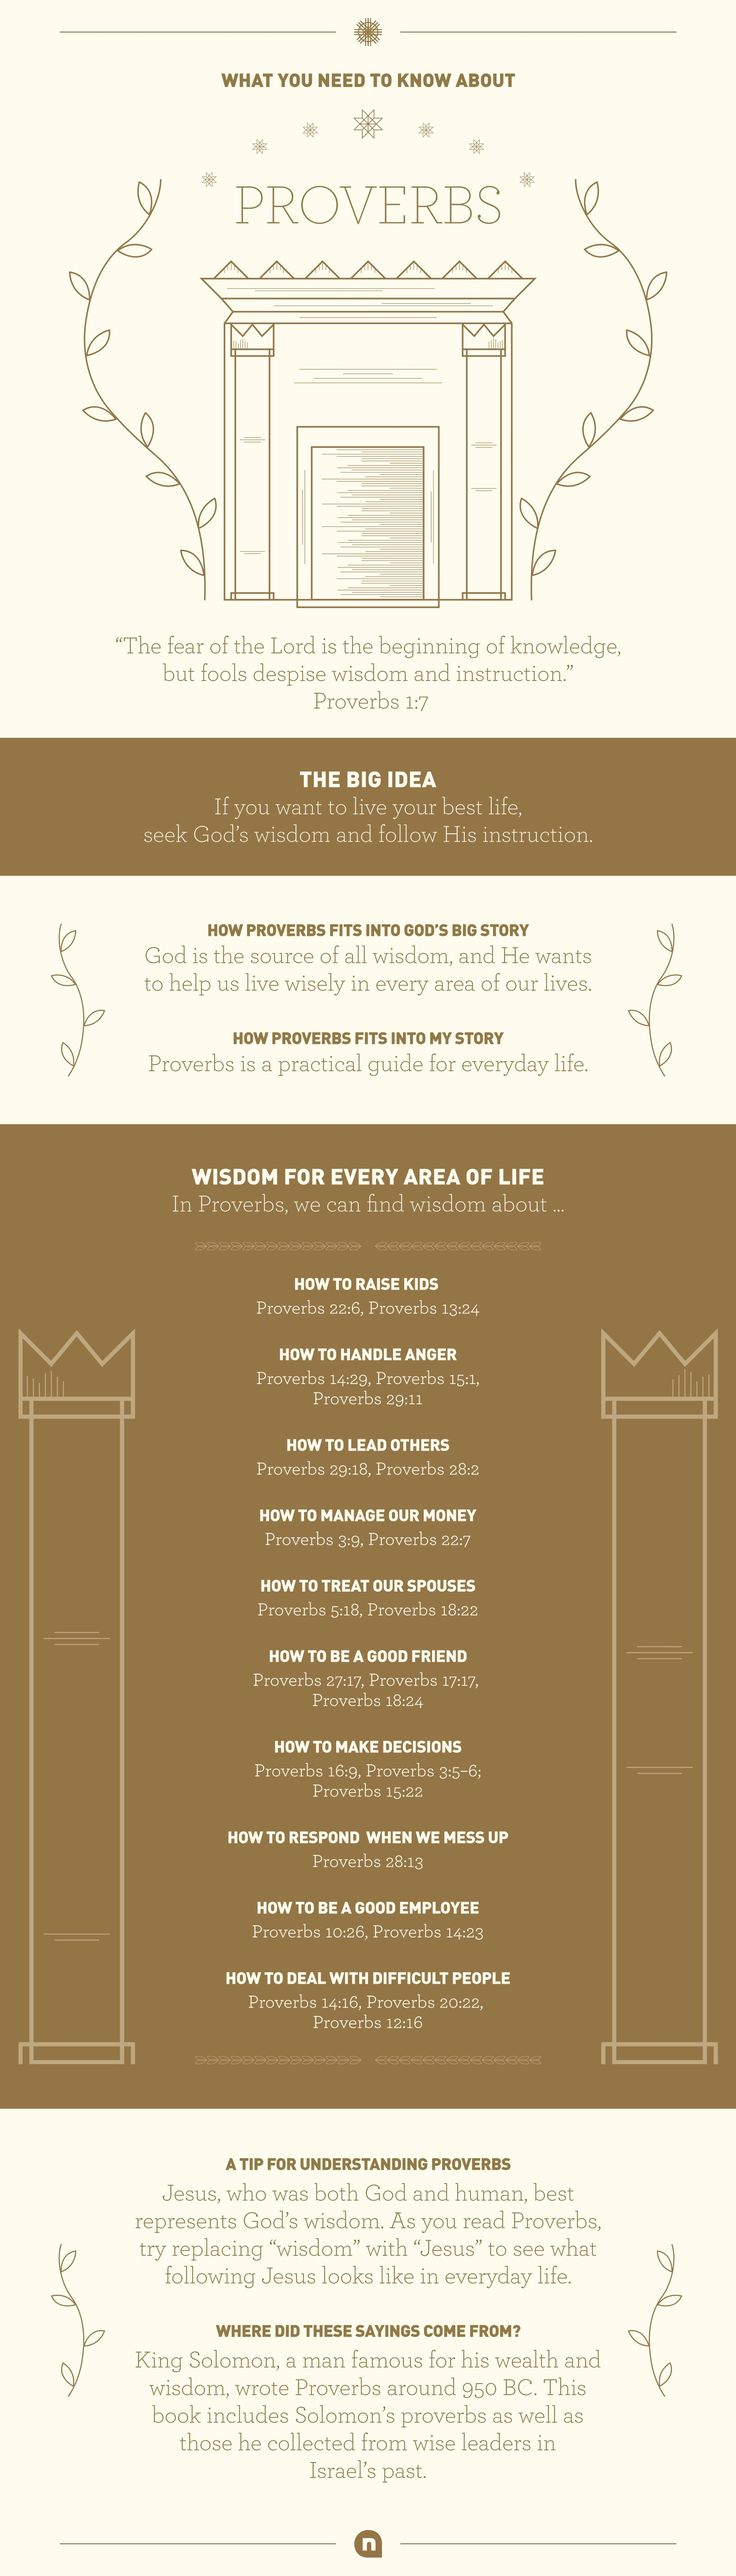 Everything You Need to Know About Proverbs